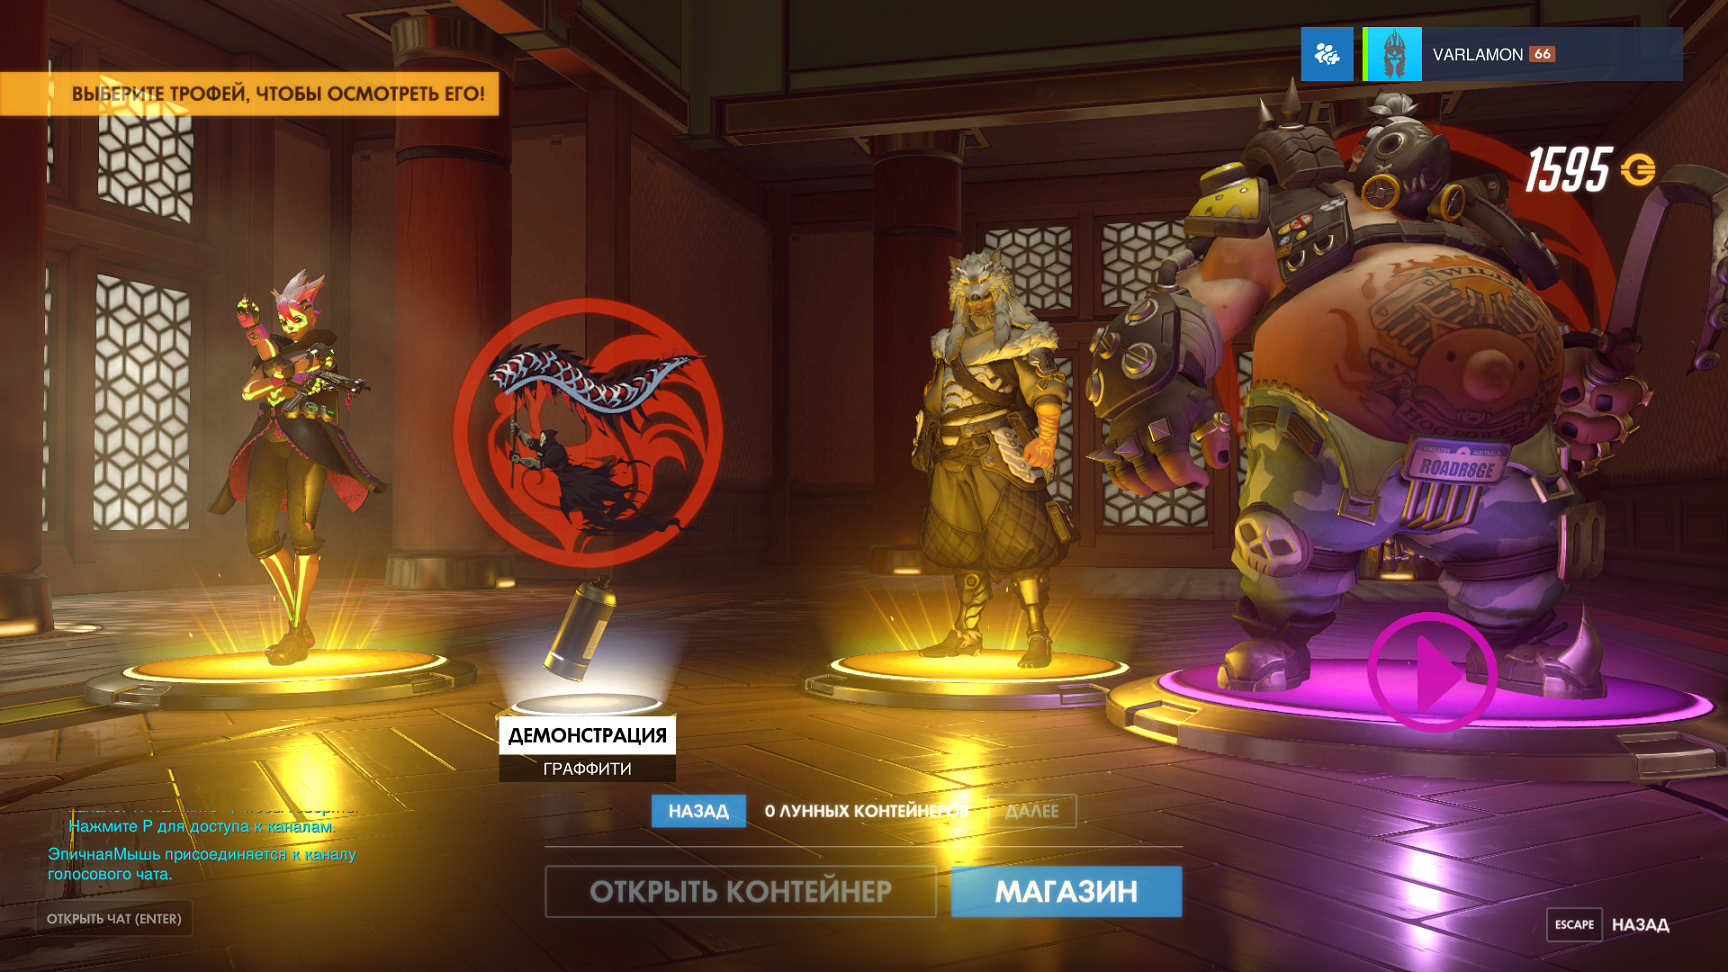 Overwatch Loot Box [Gift link | Battle.net] 2019